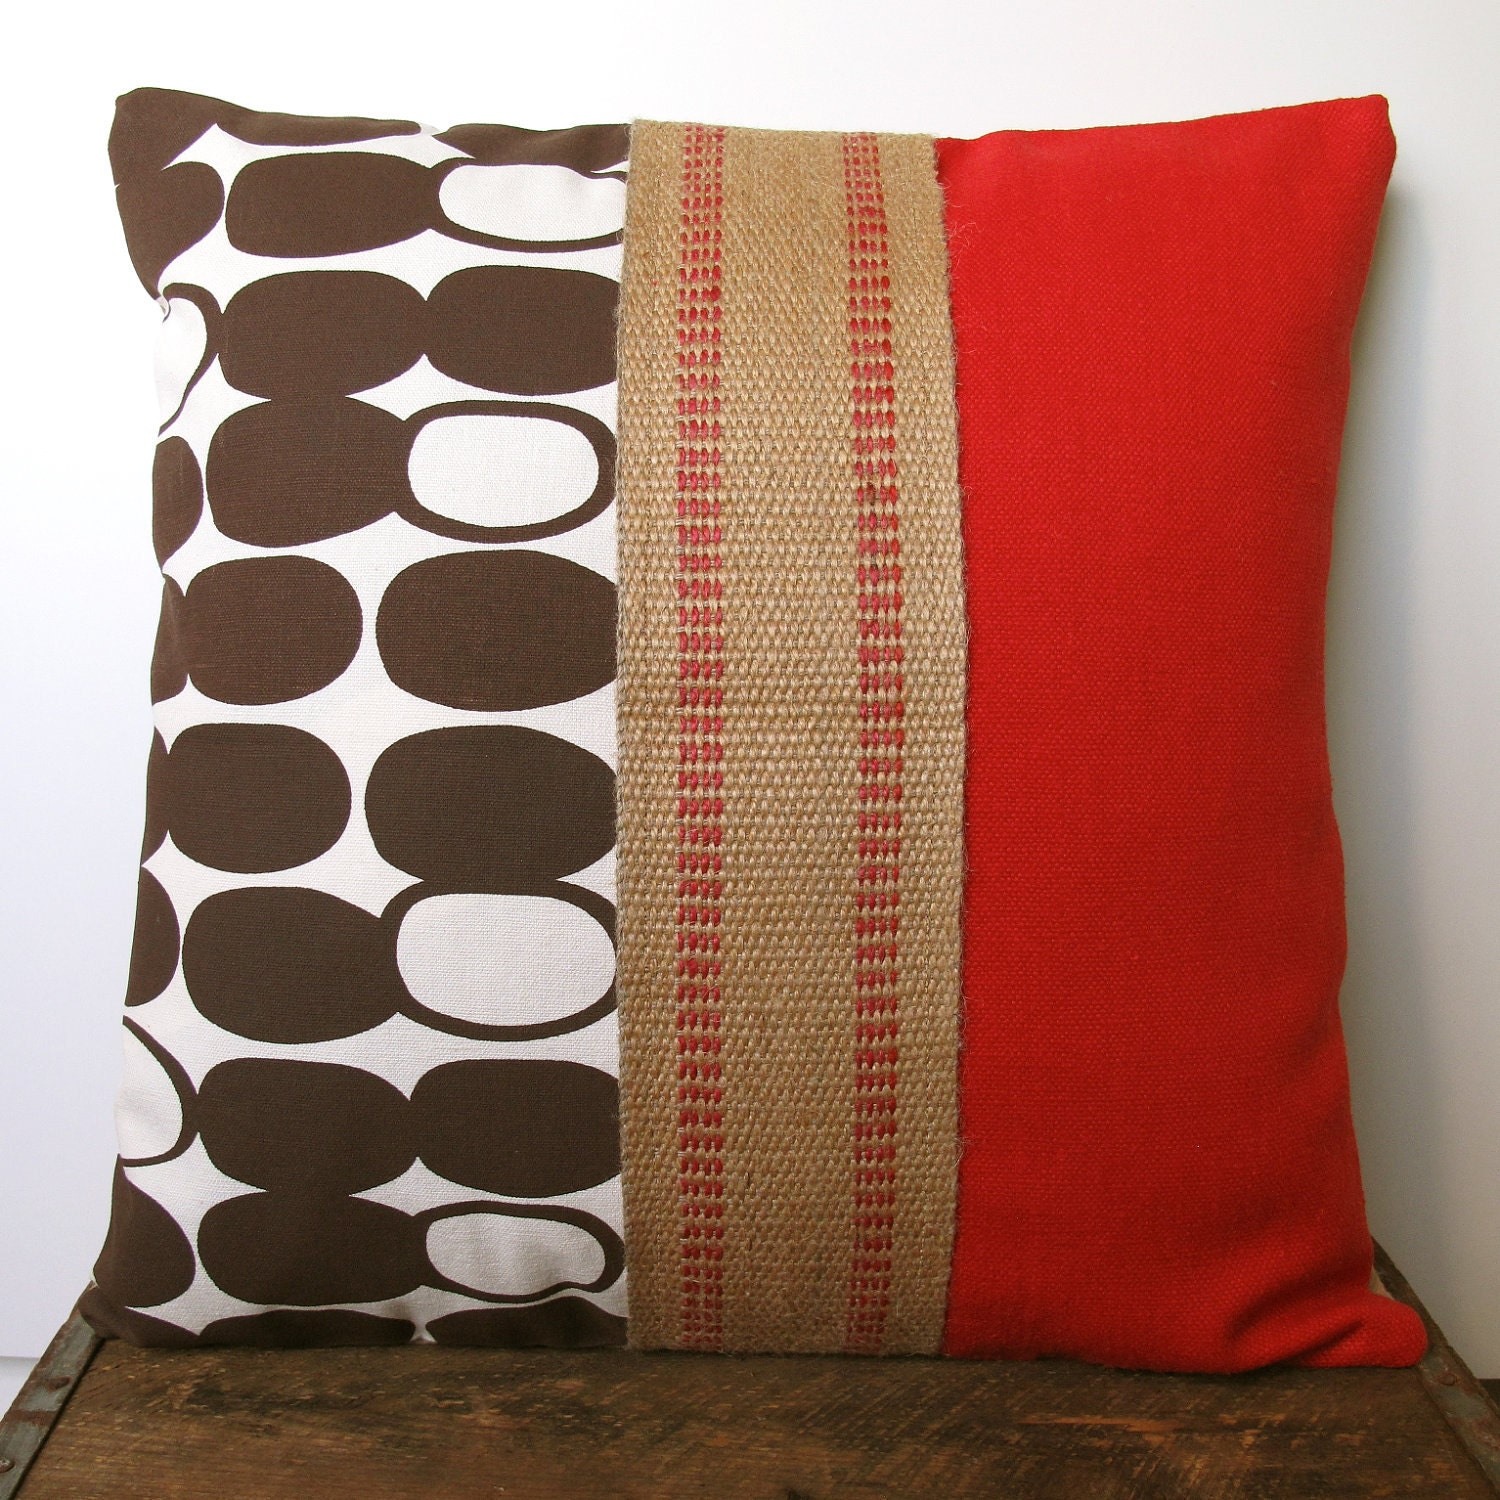 Handmade Modern Pillow Covers : Red Brown Pillow Cover Hand Printed Modern Pattern